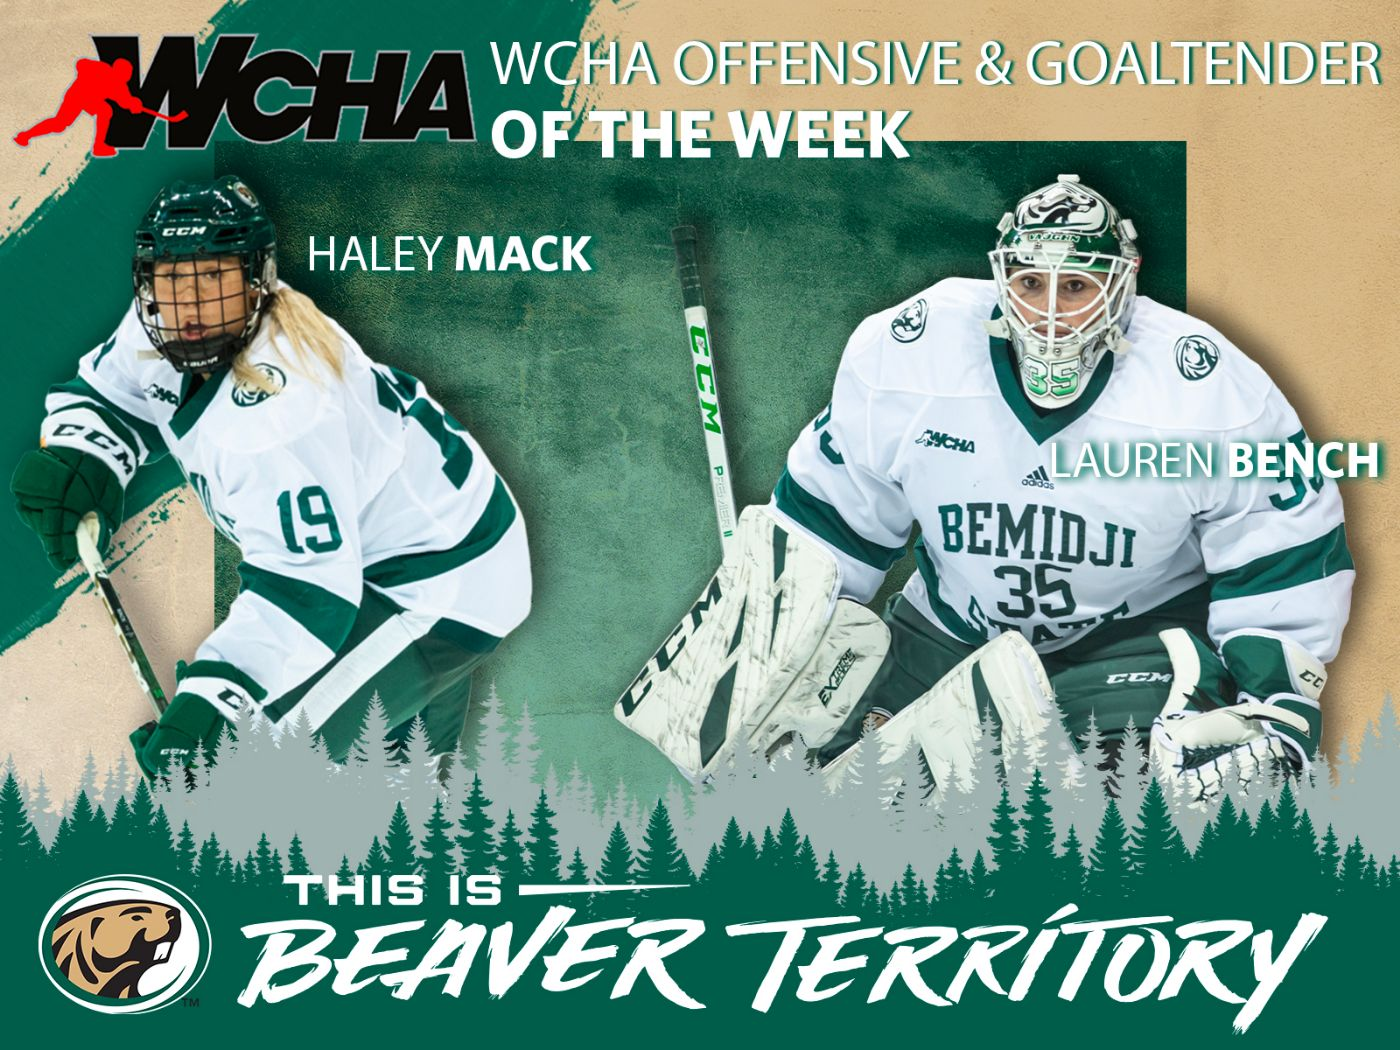 Mack and Bench earn weekly accolades from WCHA